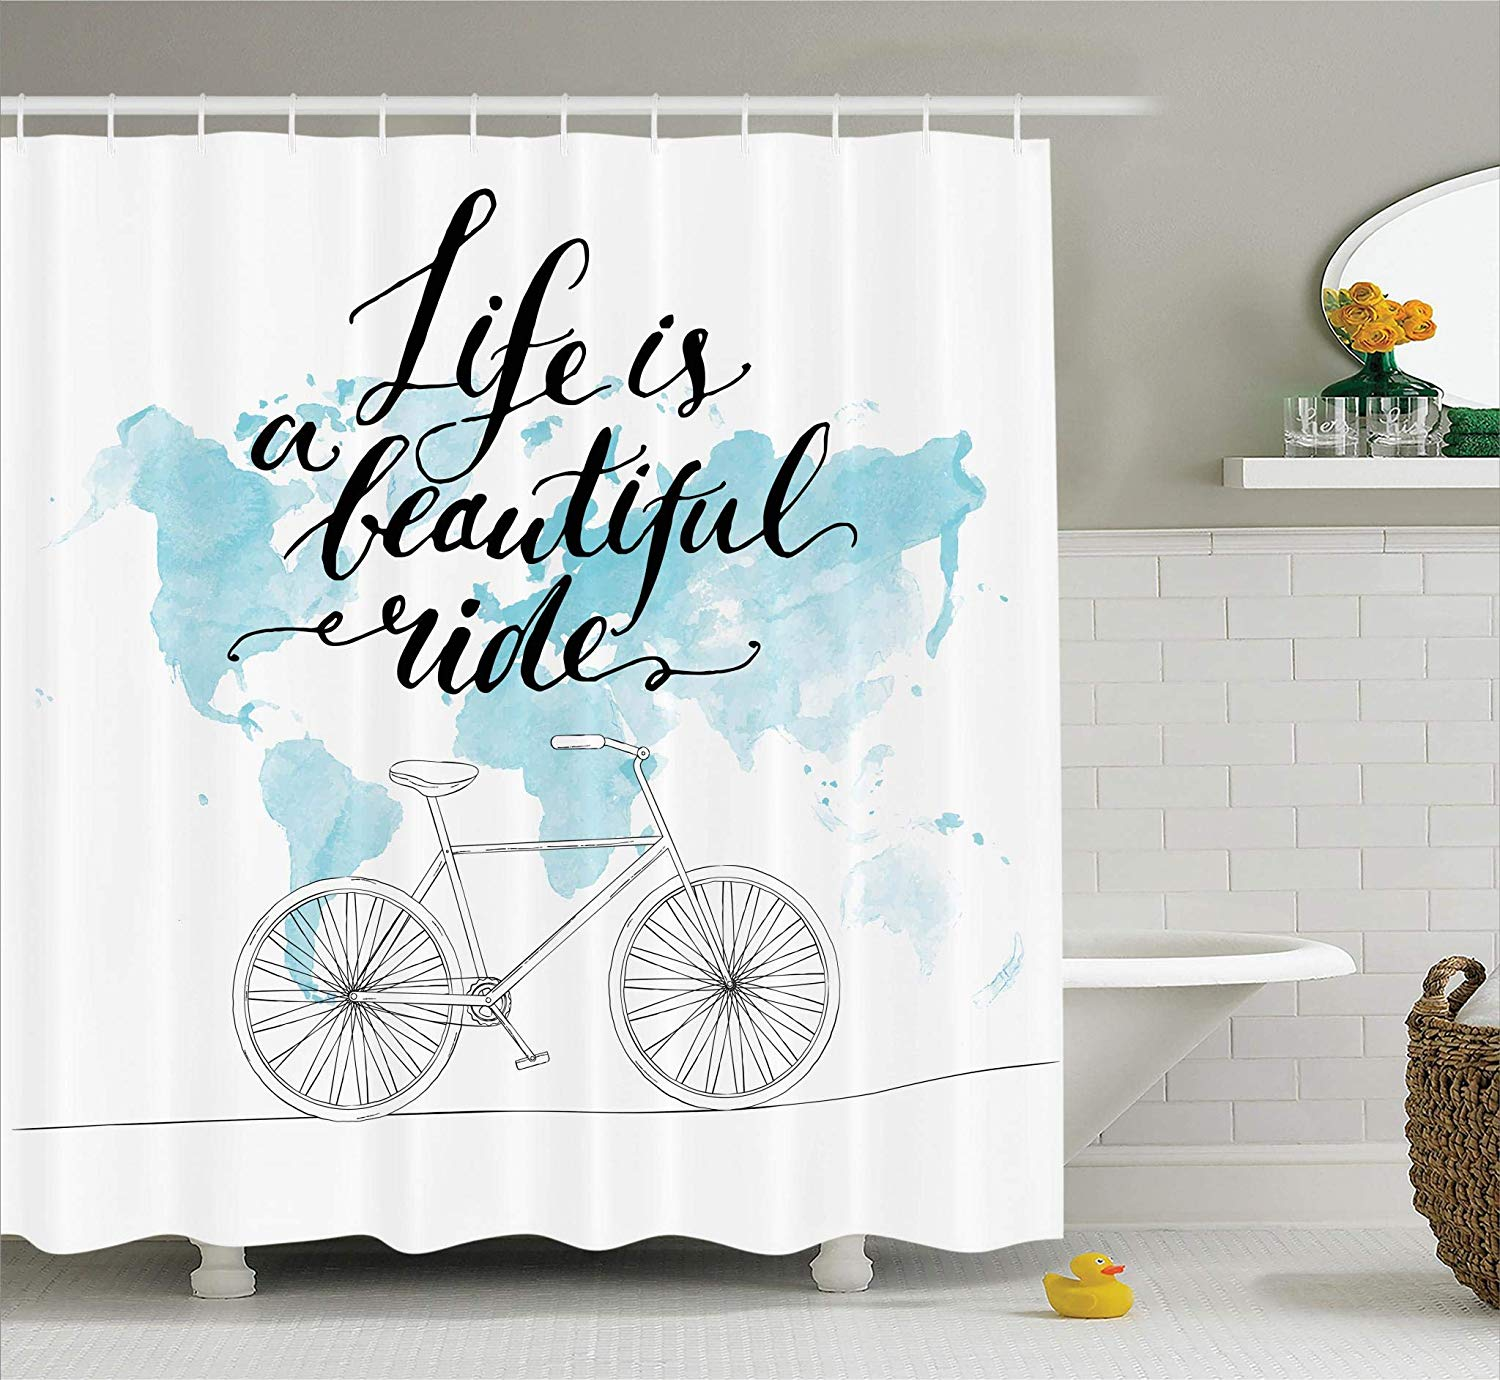 Us 18 28 Bicycle Decor Collection Inspirational Cycling Picture With World Map Polyester Fabric Bathroom Shower Curtain Set With Hooks In Shower